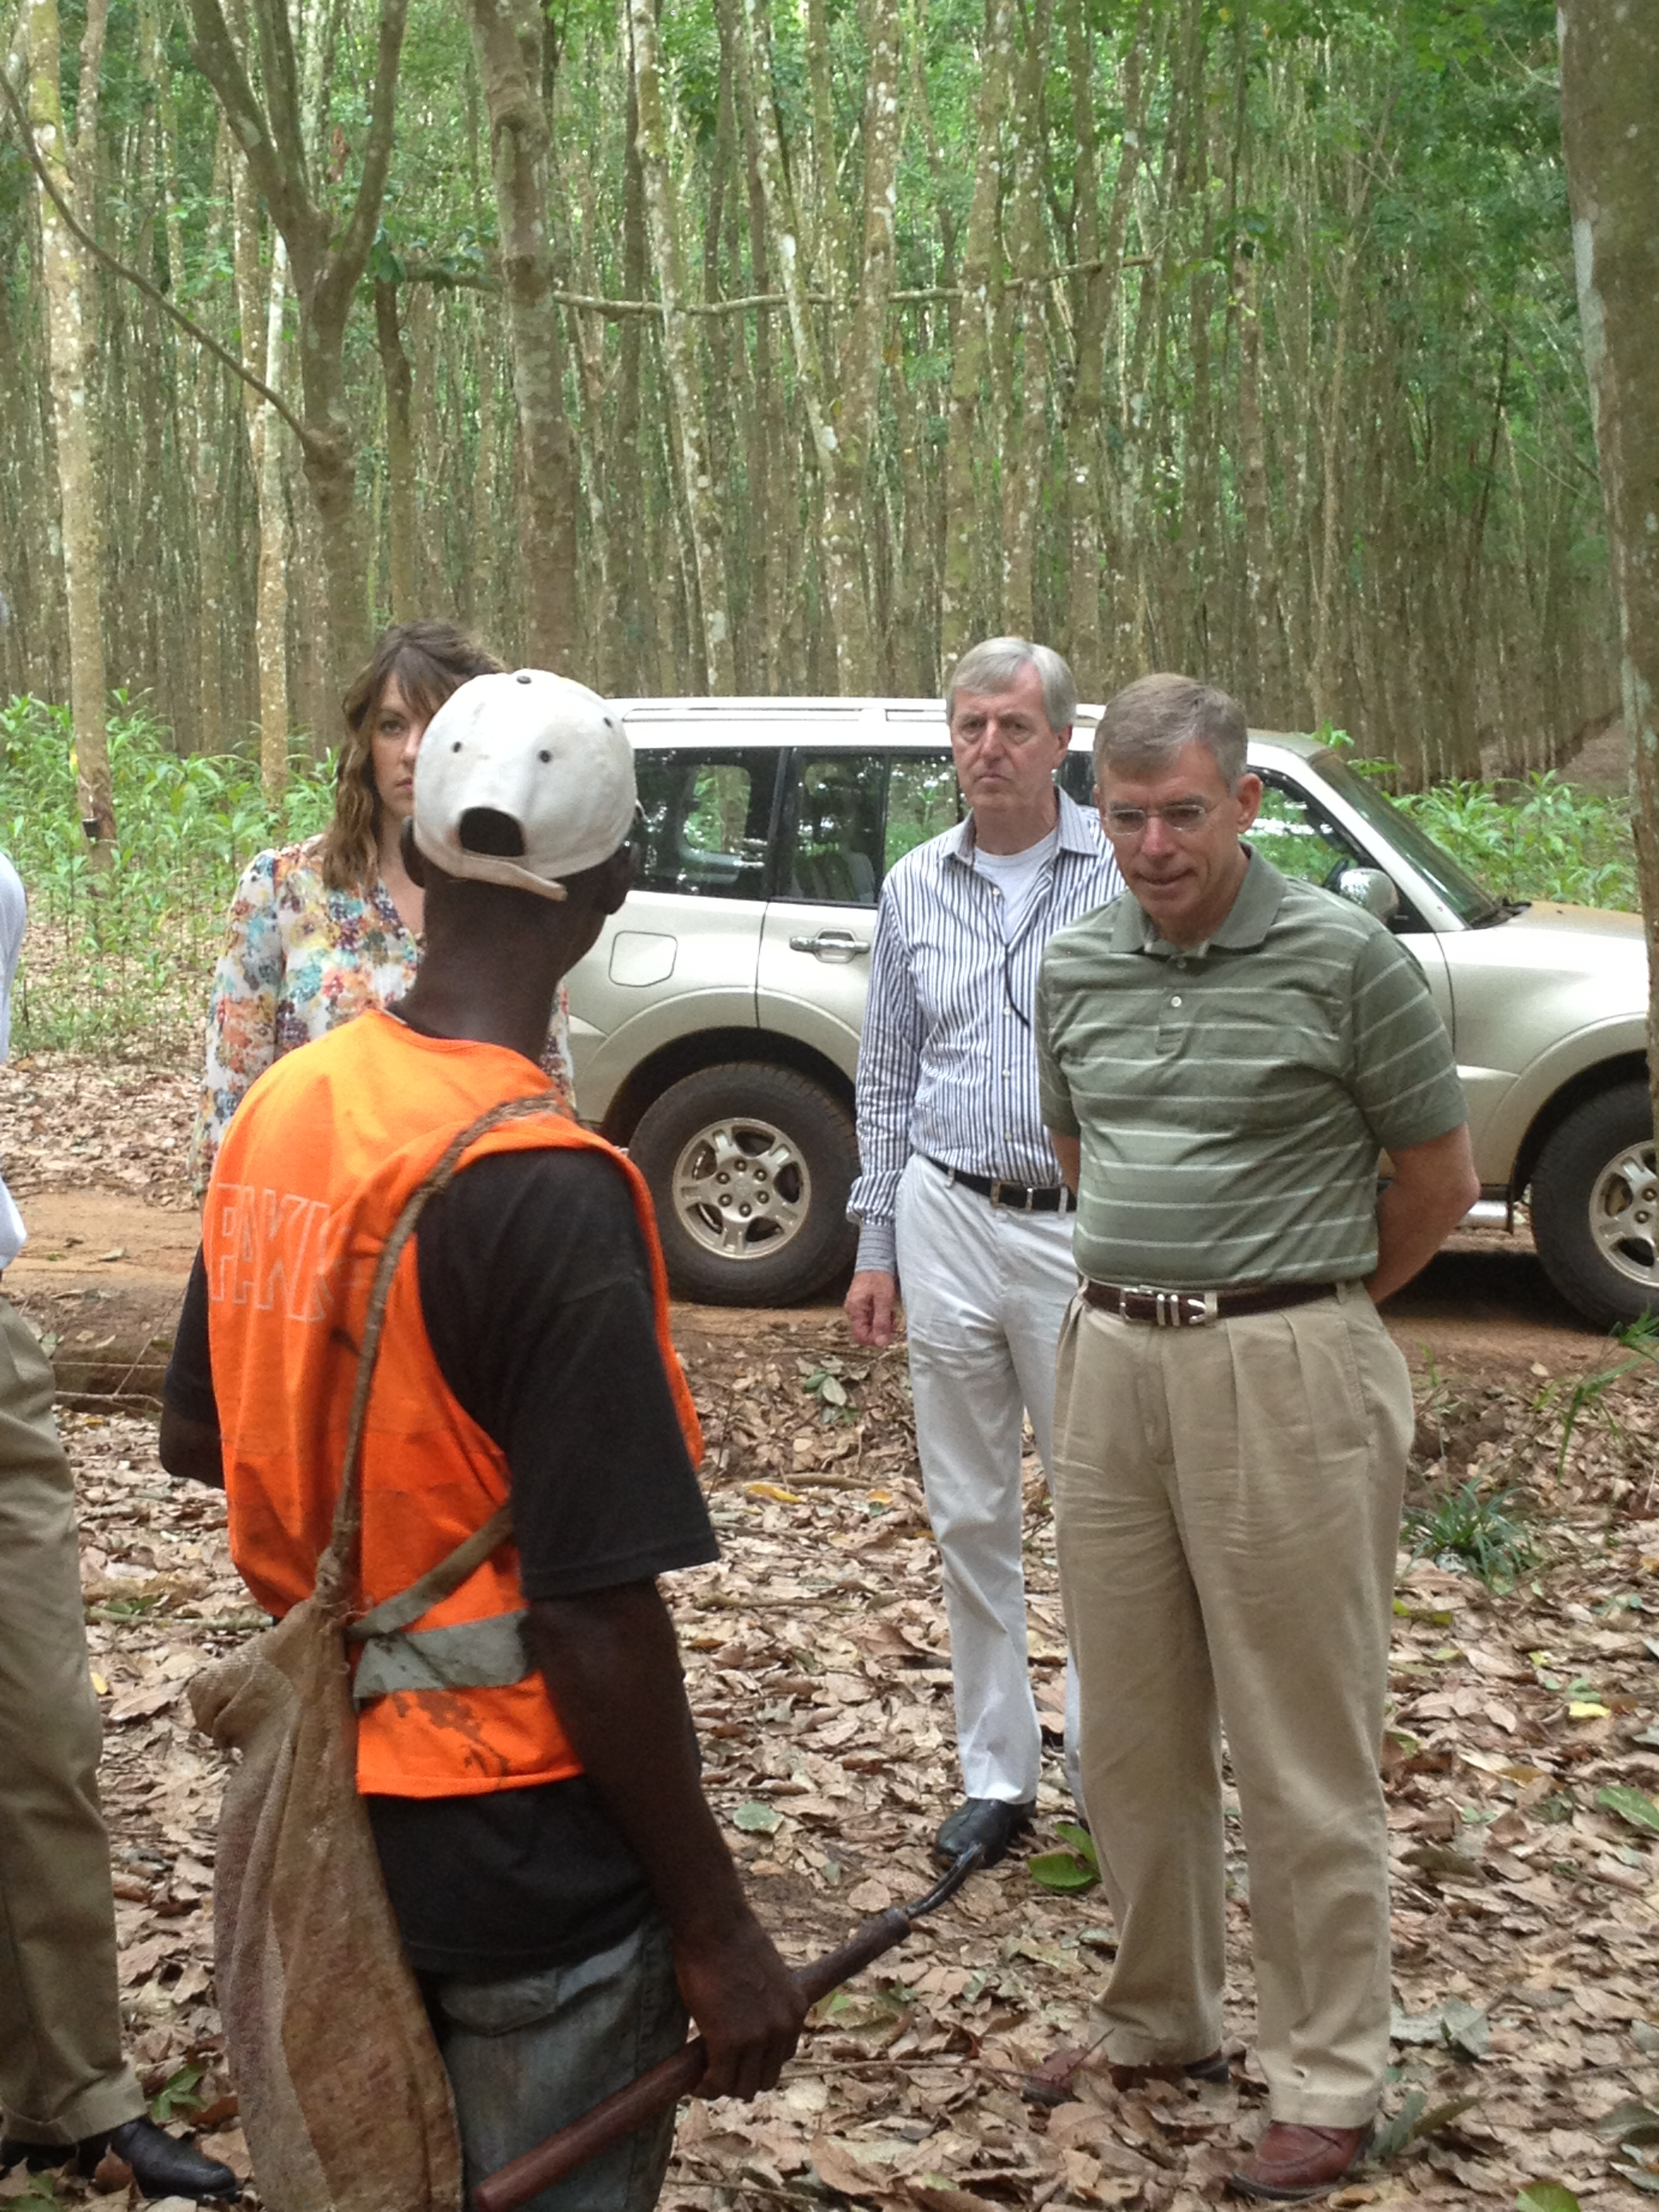 Mary Jones, JB Penn and David Everitt viewing demonstration by rubber tree plantation worker